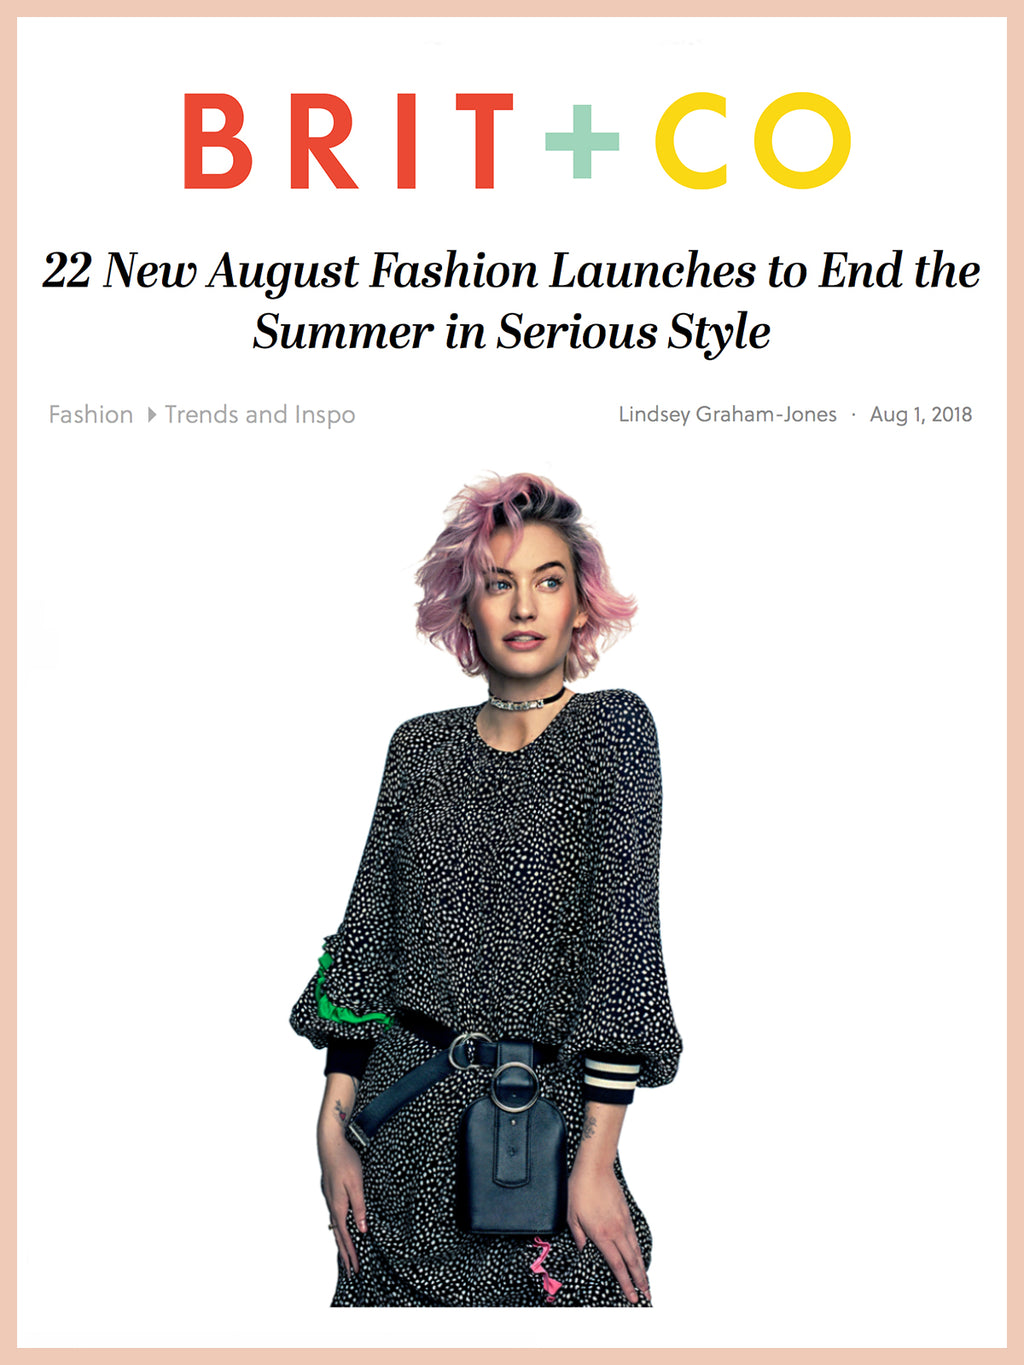 BRIT + CO, 22 New August Fashion Launches to End the Summer in Serious Style